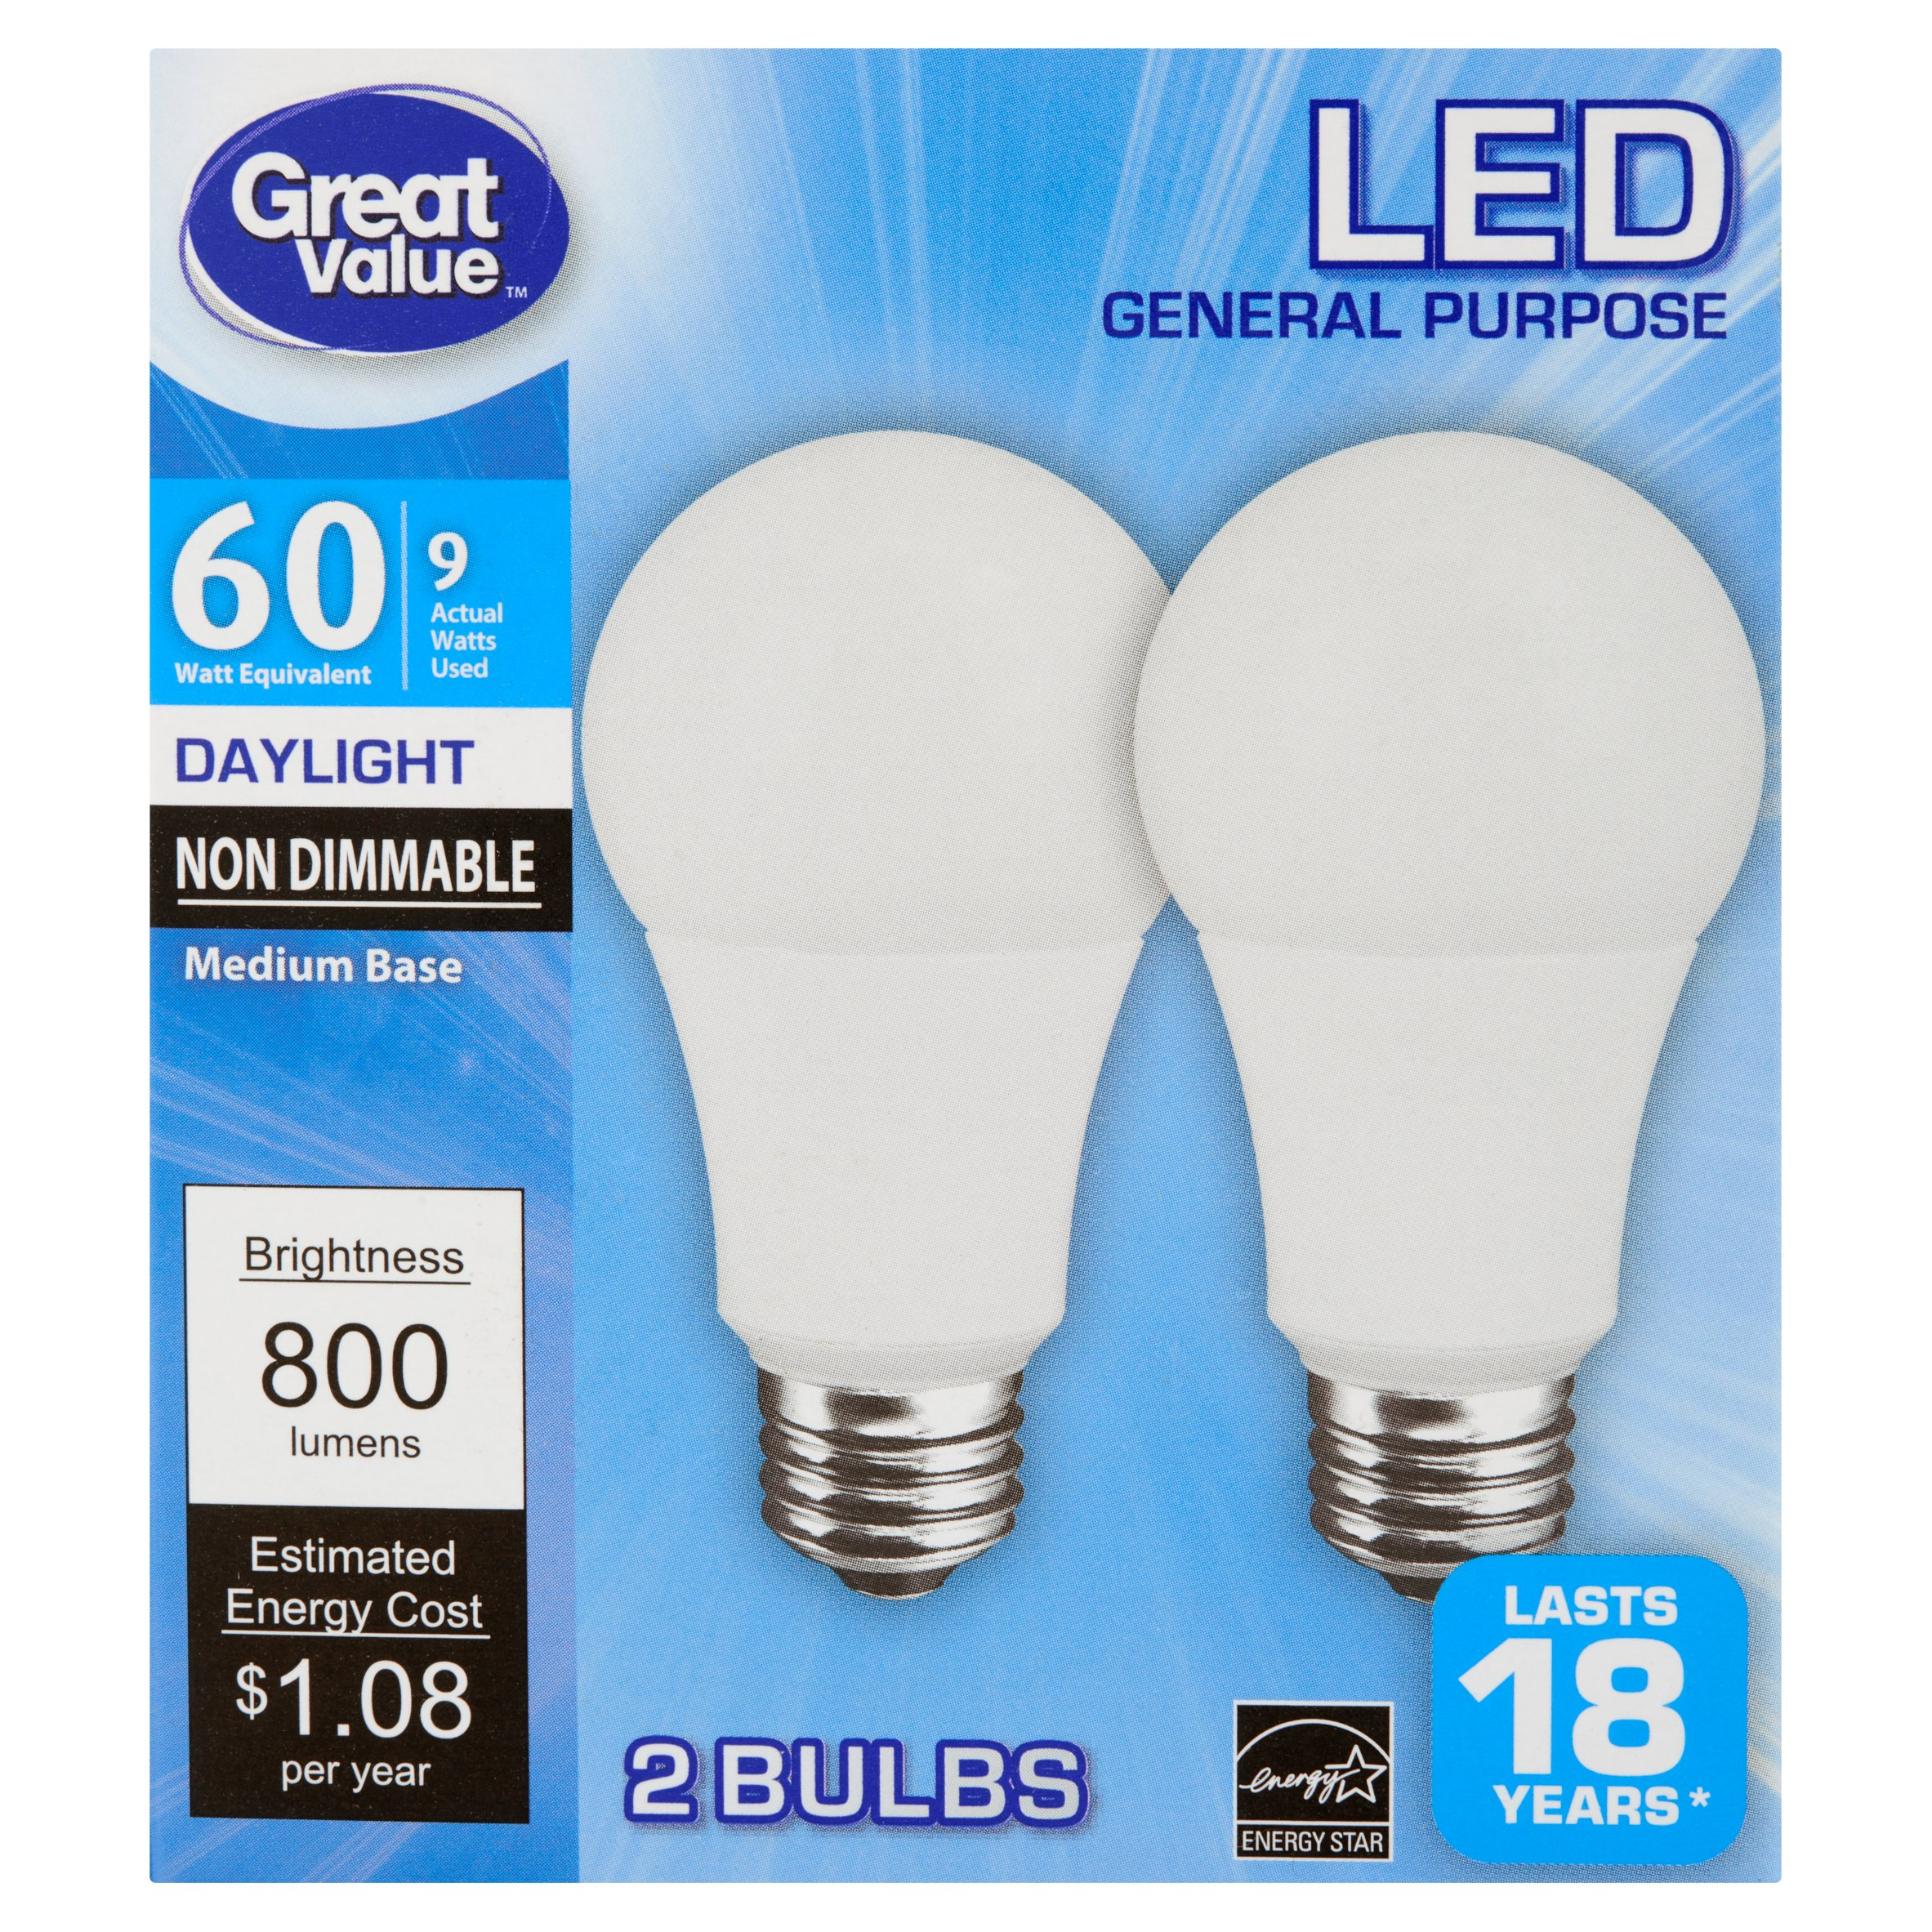 Great Value LED General Purpose Daylight Medium Base Bulbs 9W, 2 ...